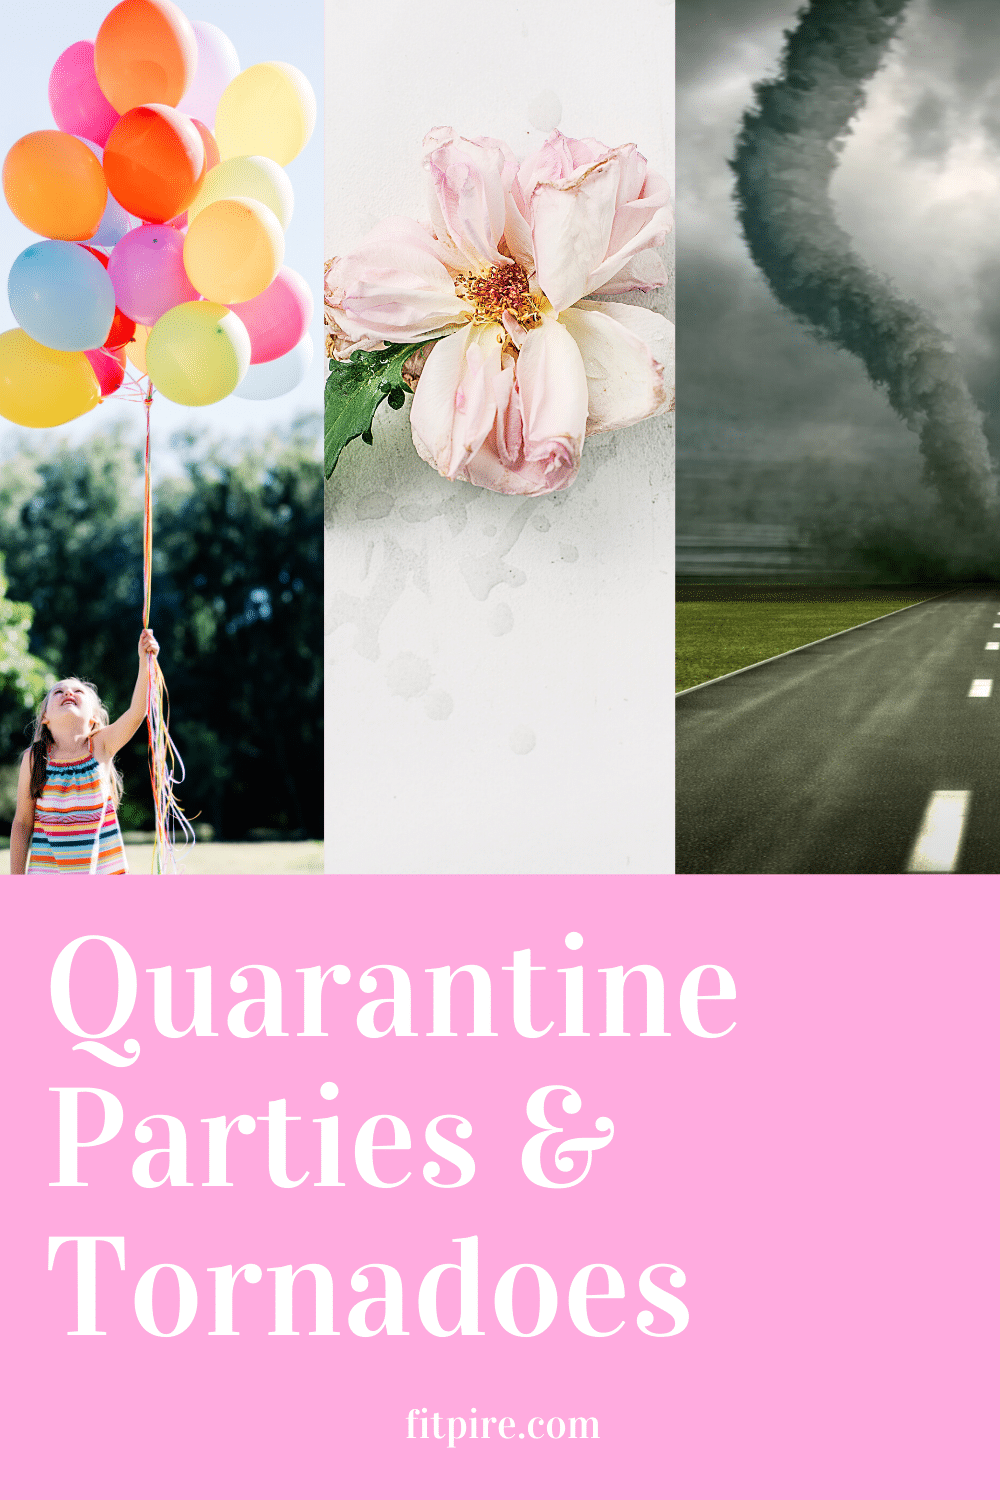 Quarantine Parties and Tornadoes